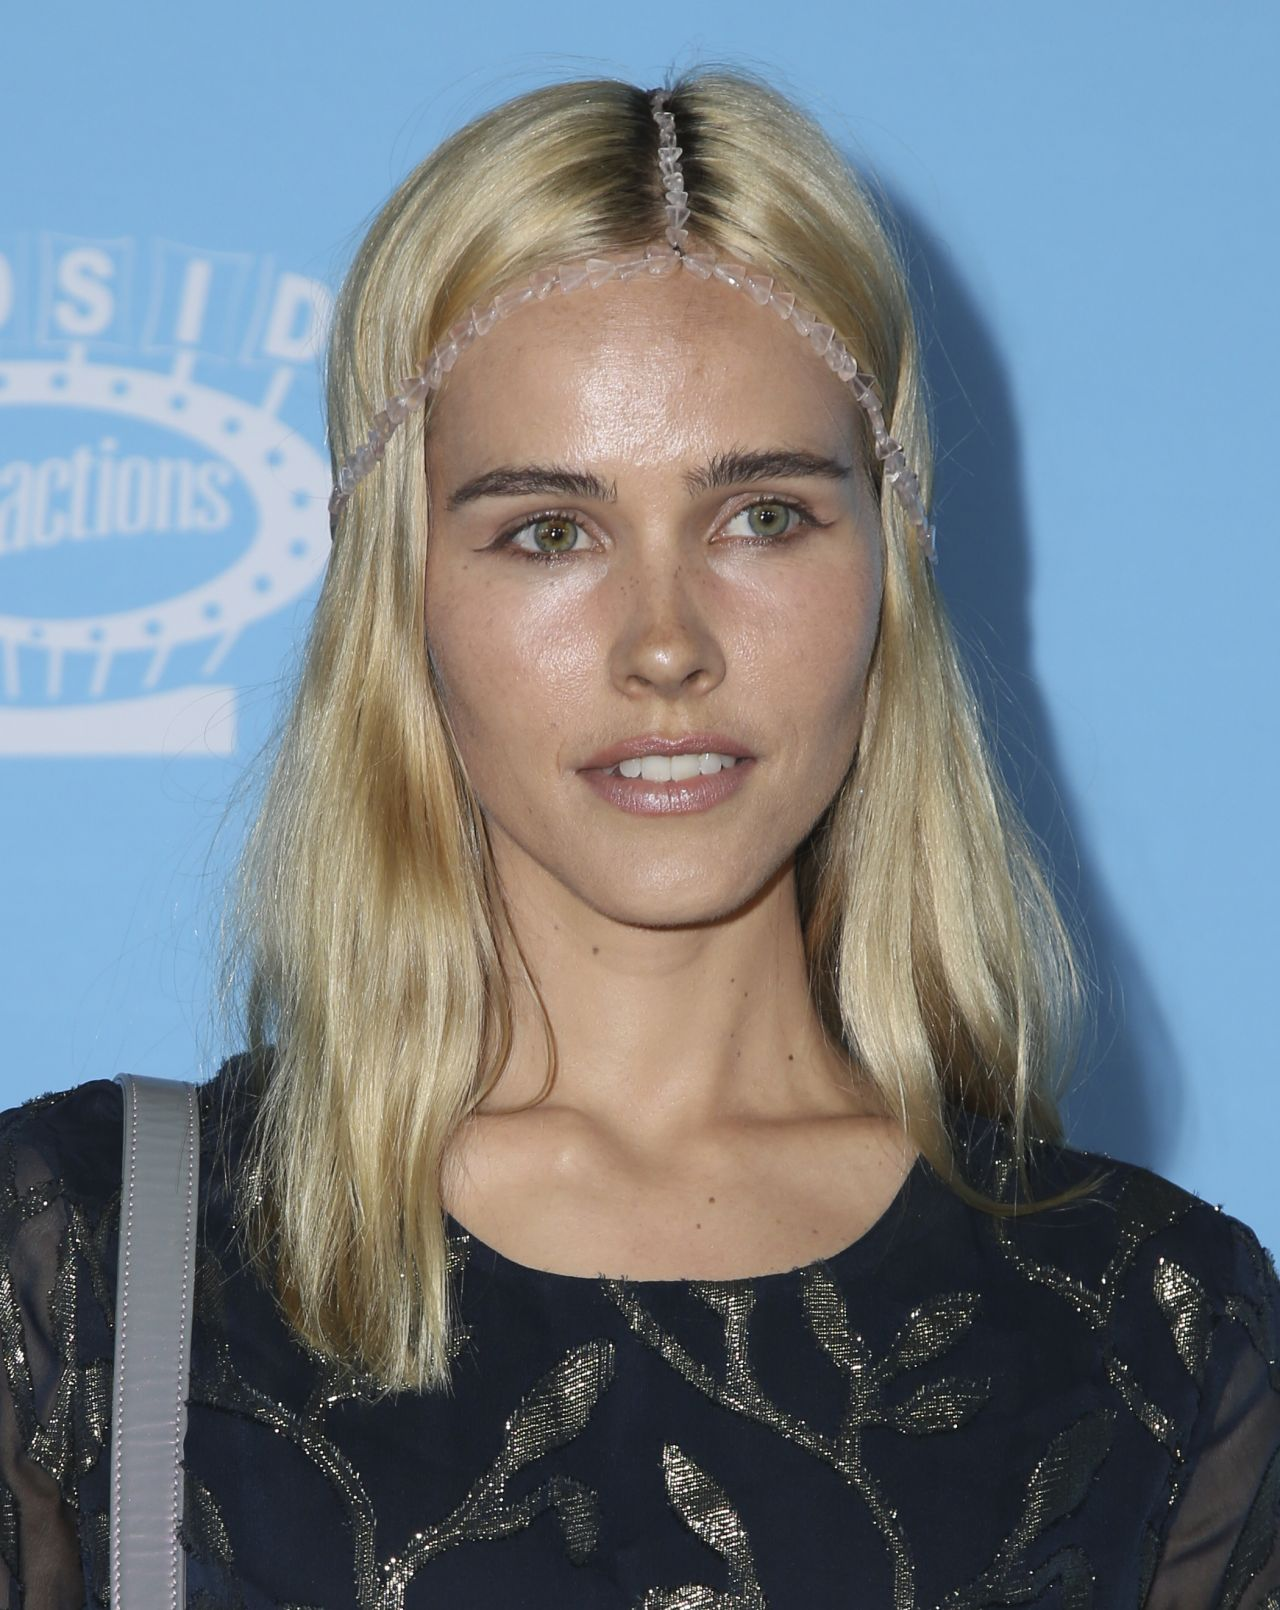 Isabel Lucas nudes (64 foto and video), Topless, Hot, Twitter, swimsuit 2019